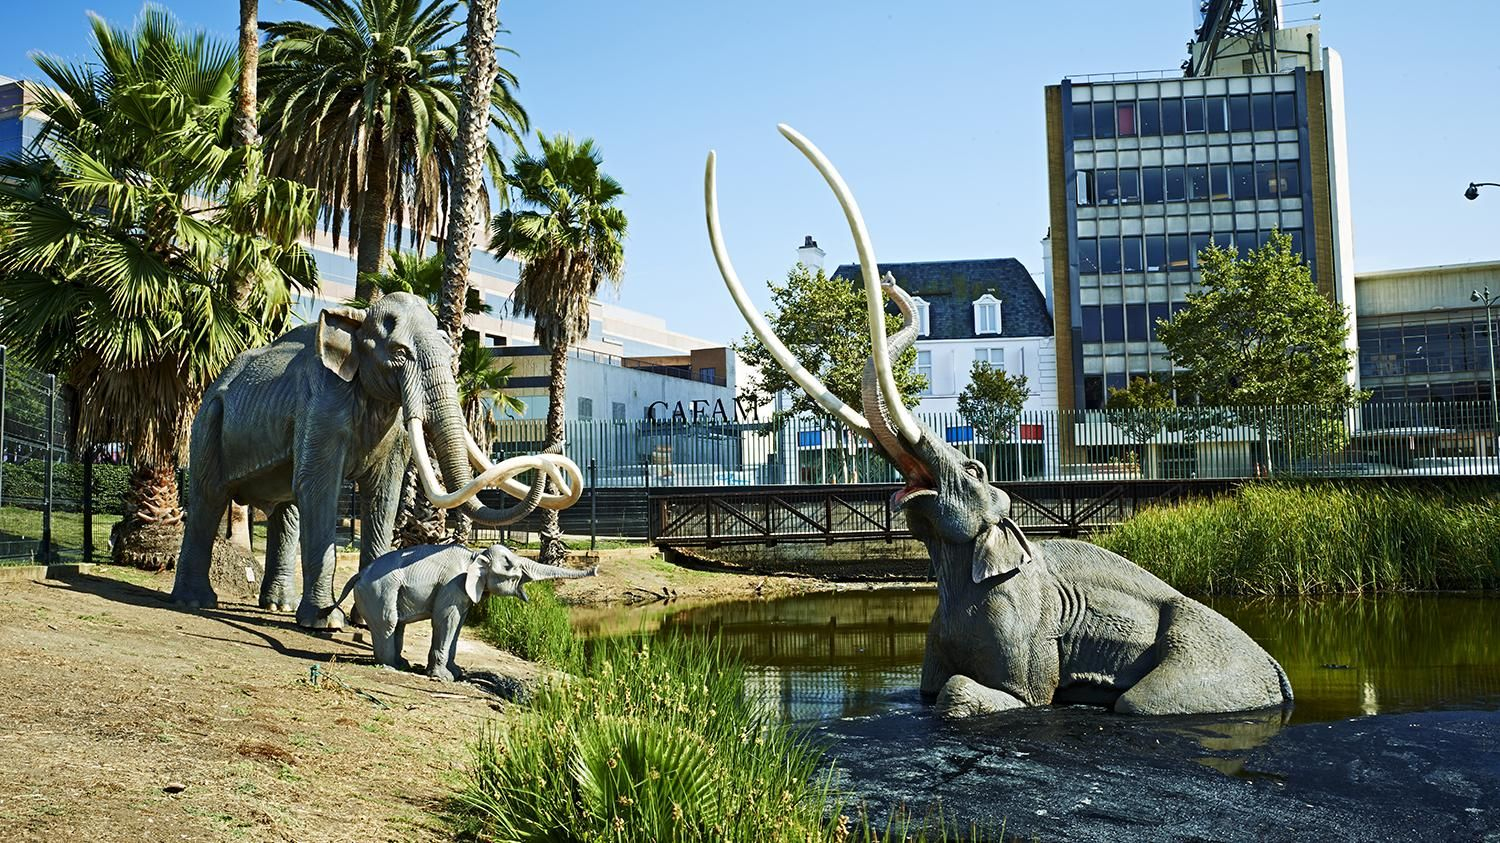 10 Fascinating Facts About The La Brea Tar Pits La Brea Tar Pits Los Angeles Attractions Los Angeles Travel